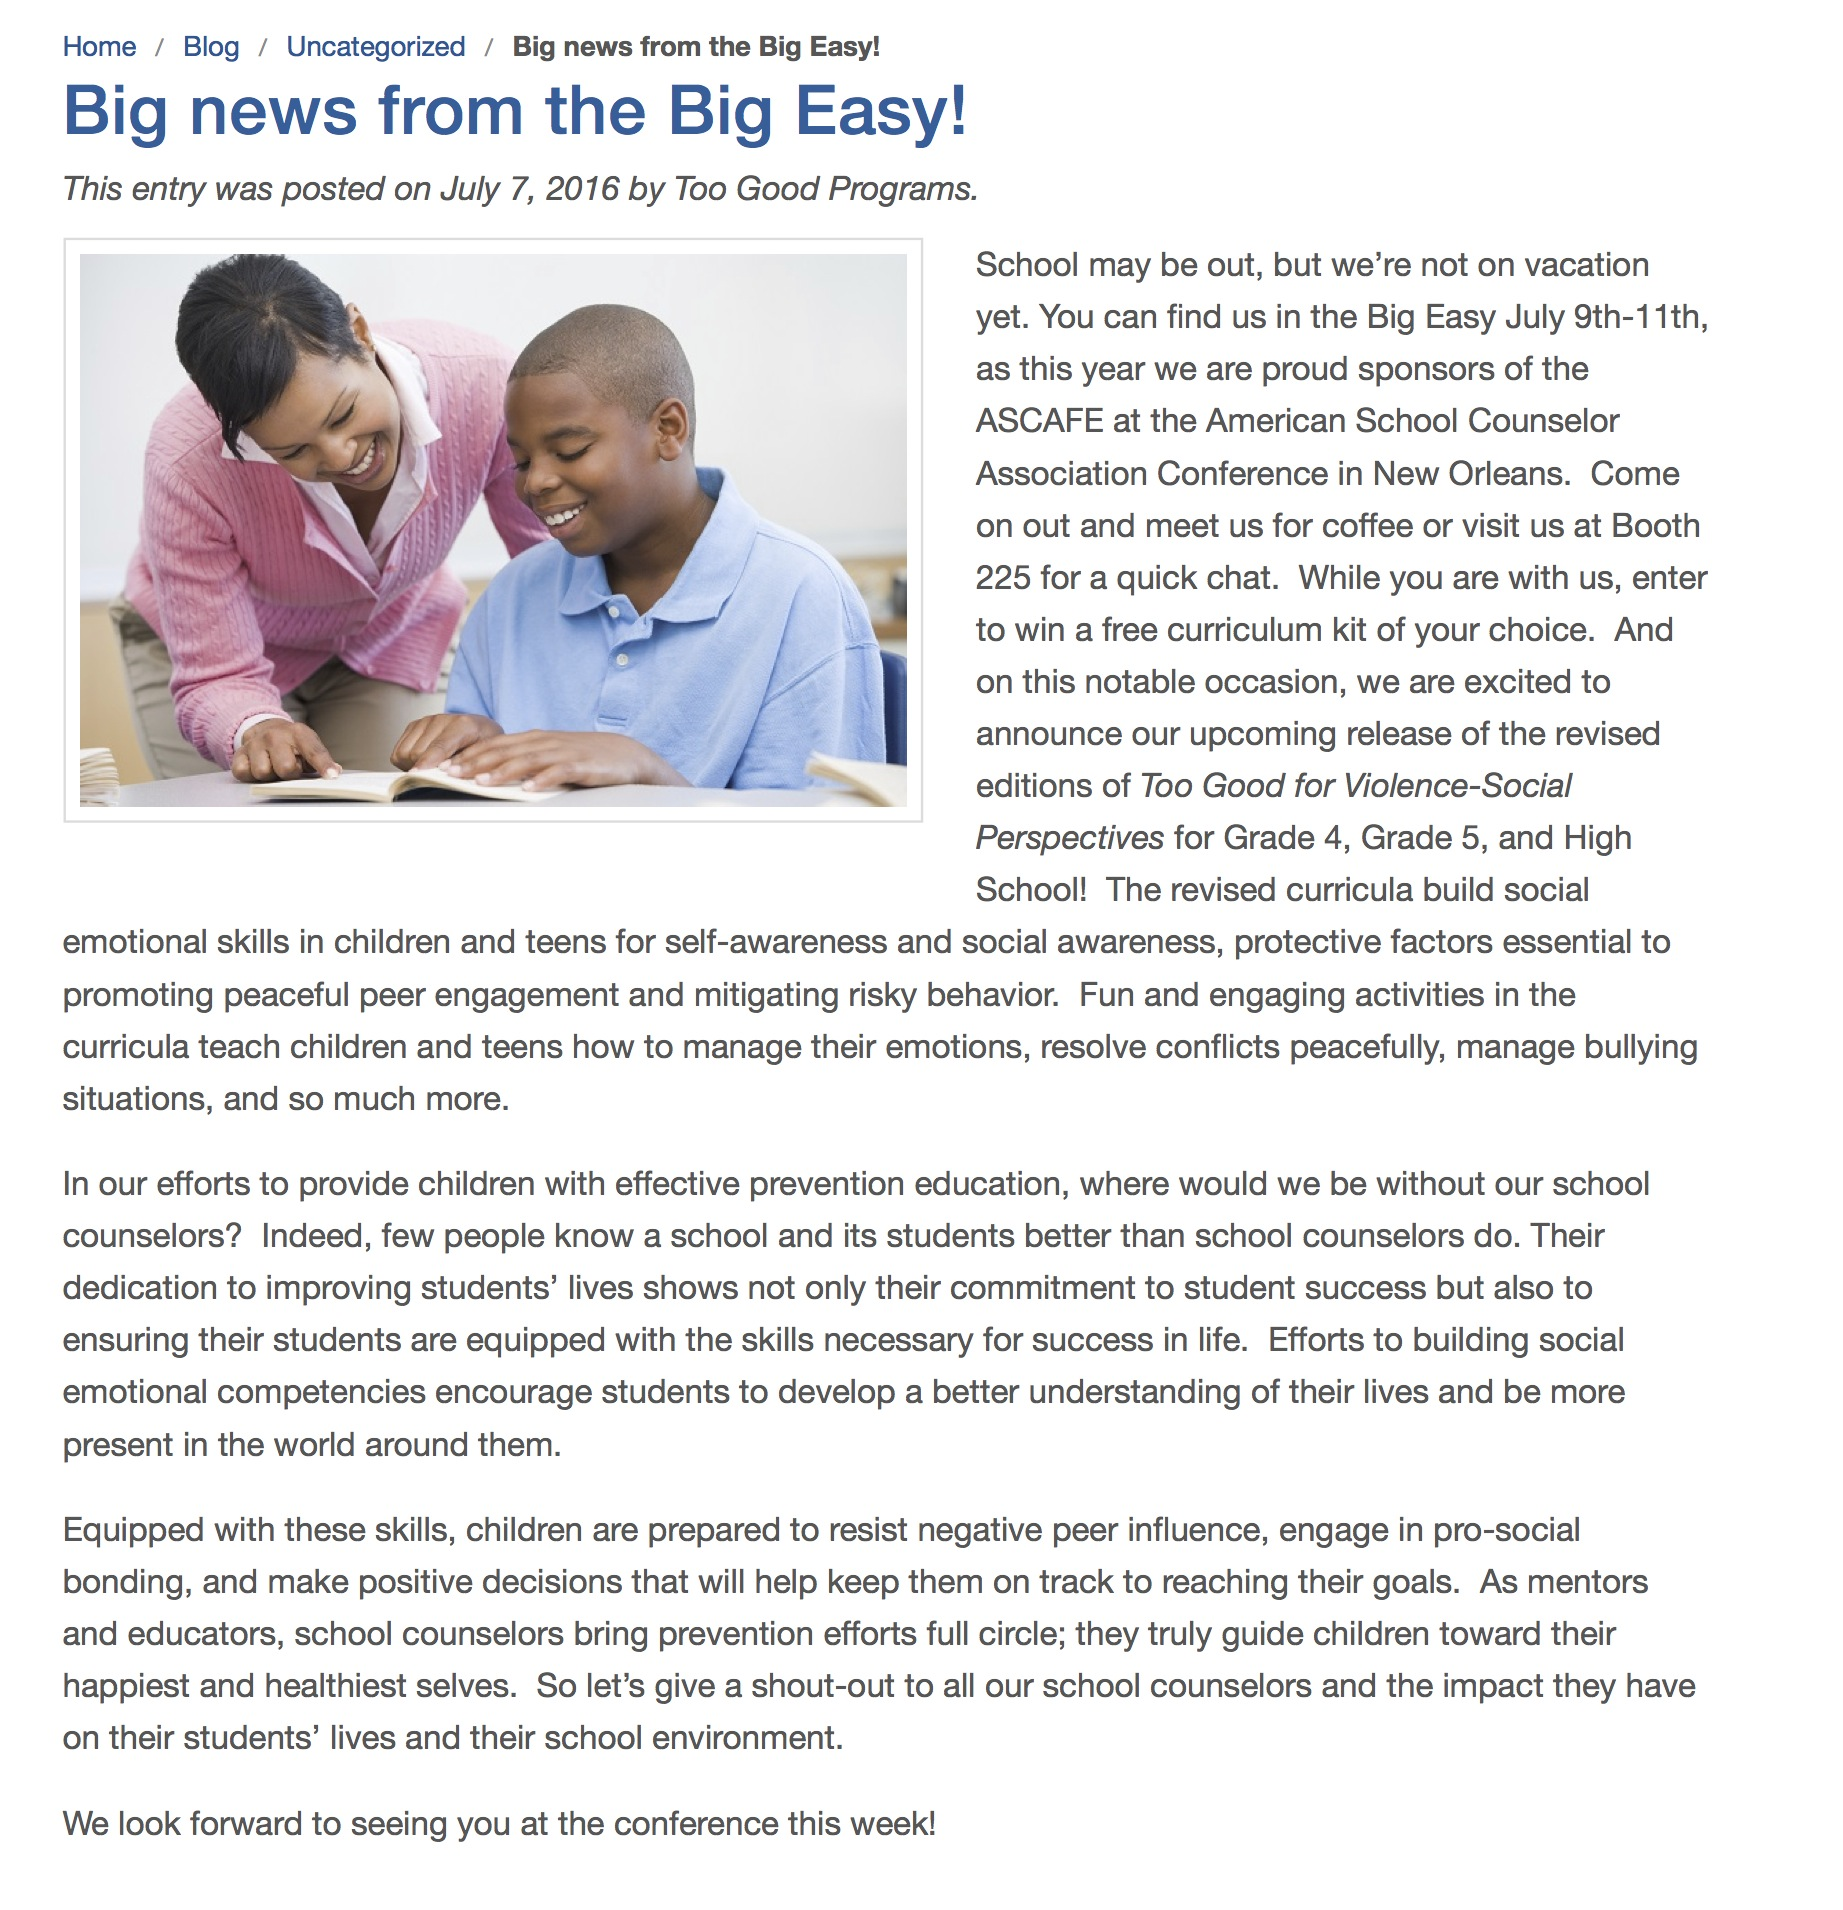 Big news from the Big Easy!.jpg